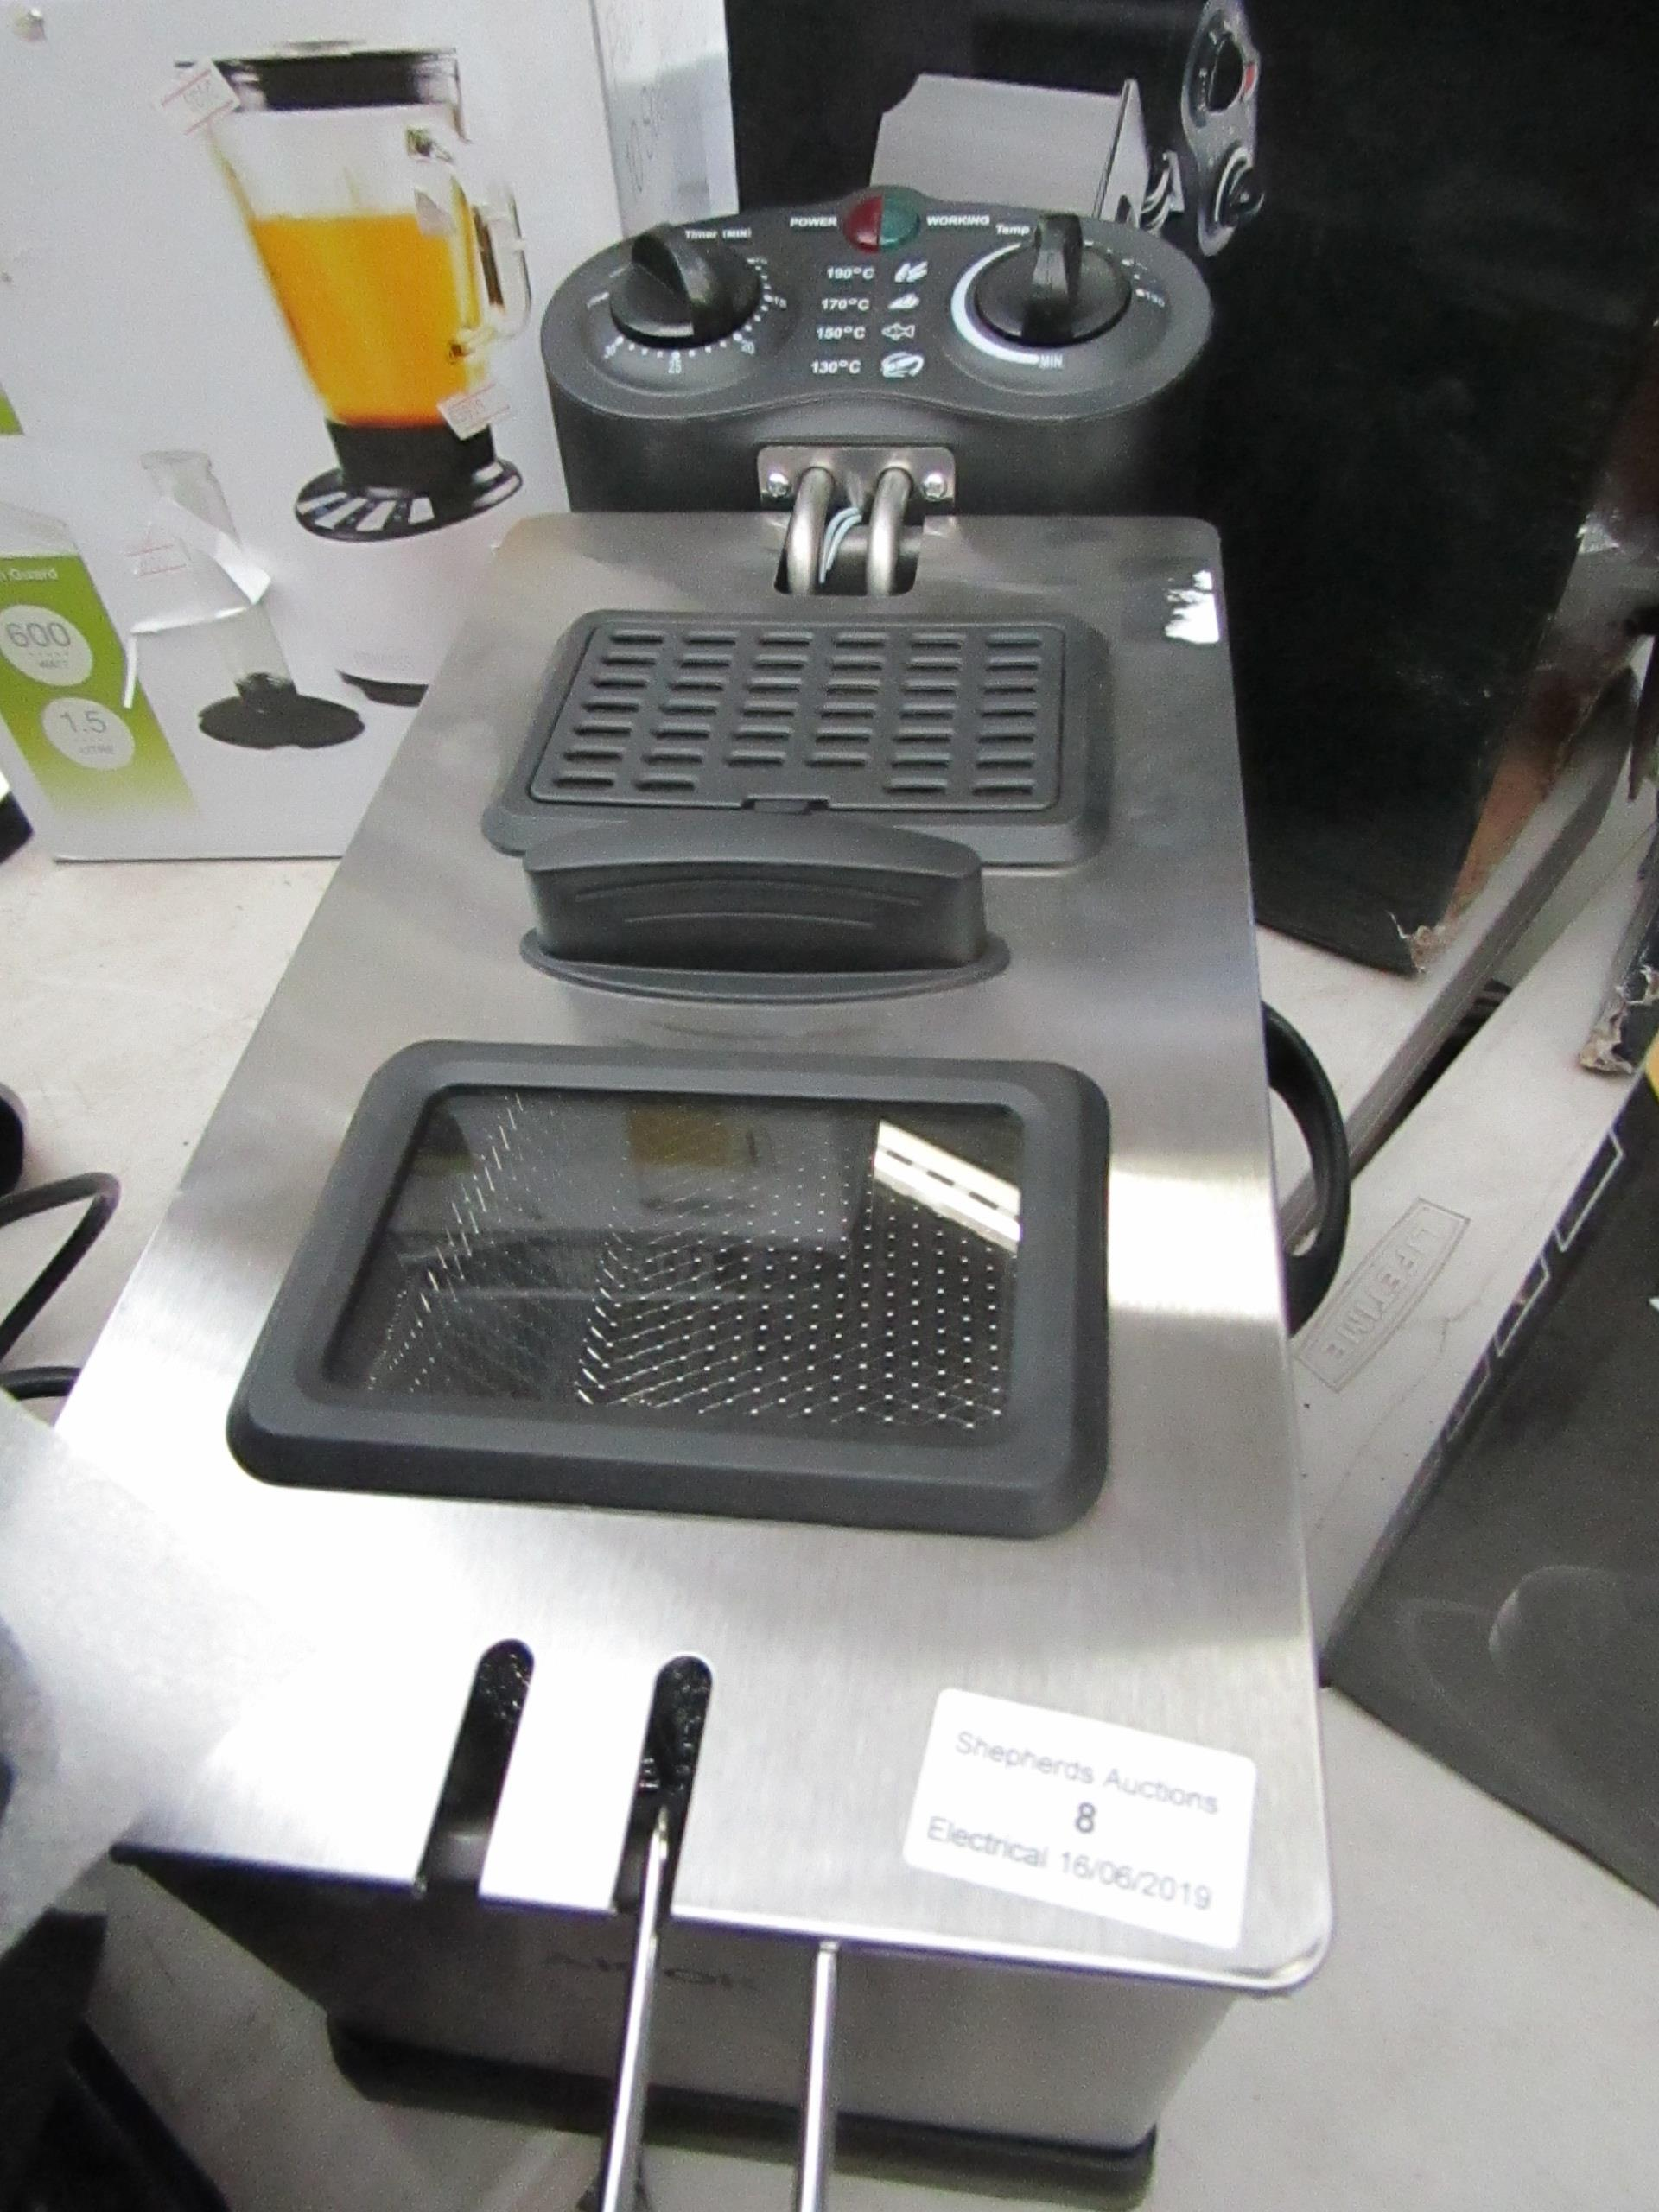 Lot 8 - Aicok deep fryer, tested working and boxed.